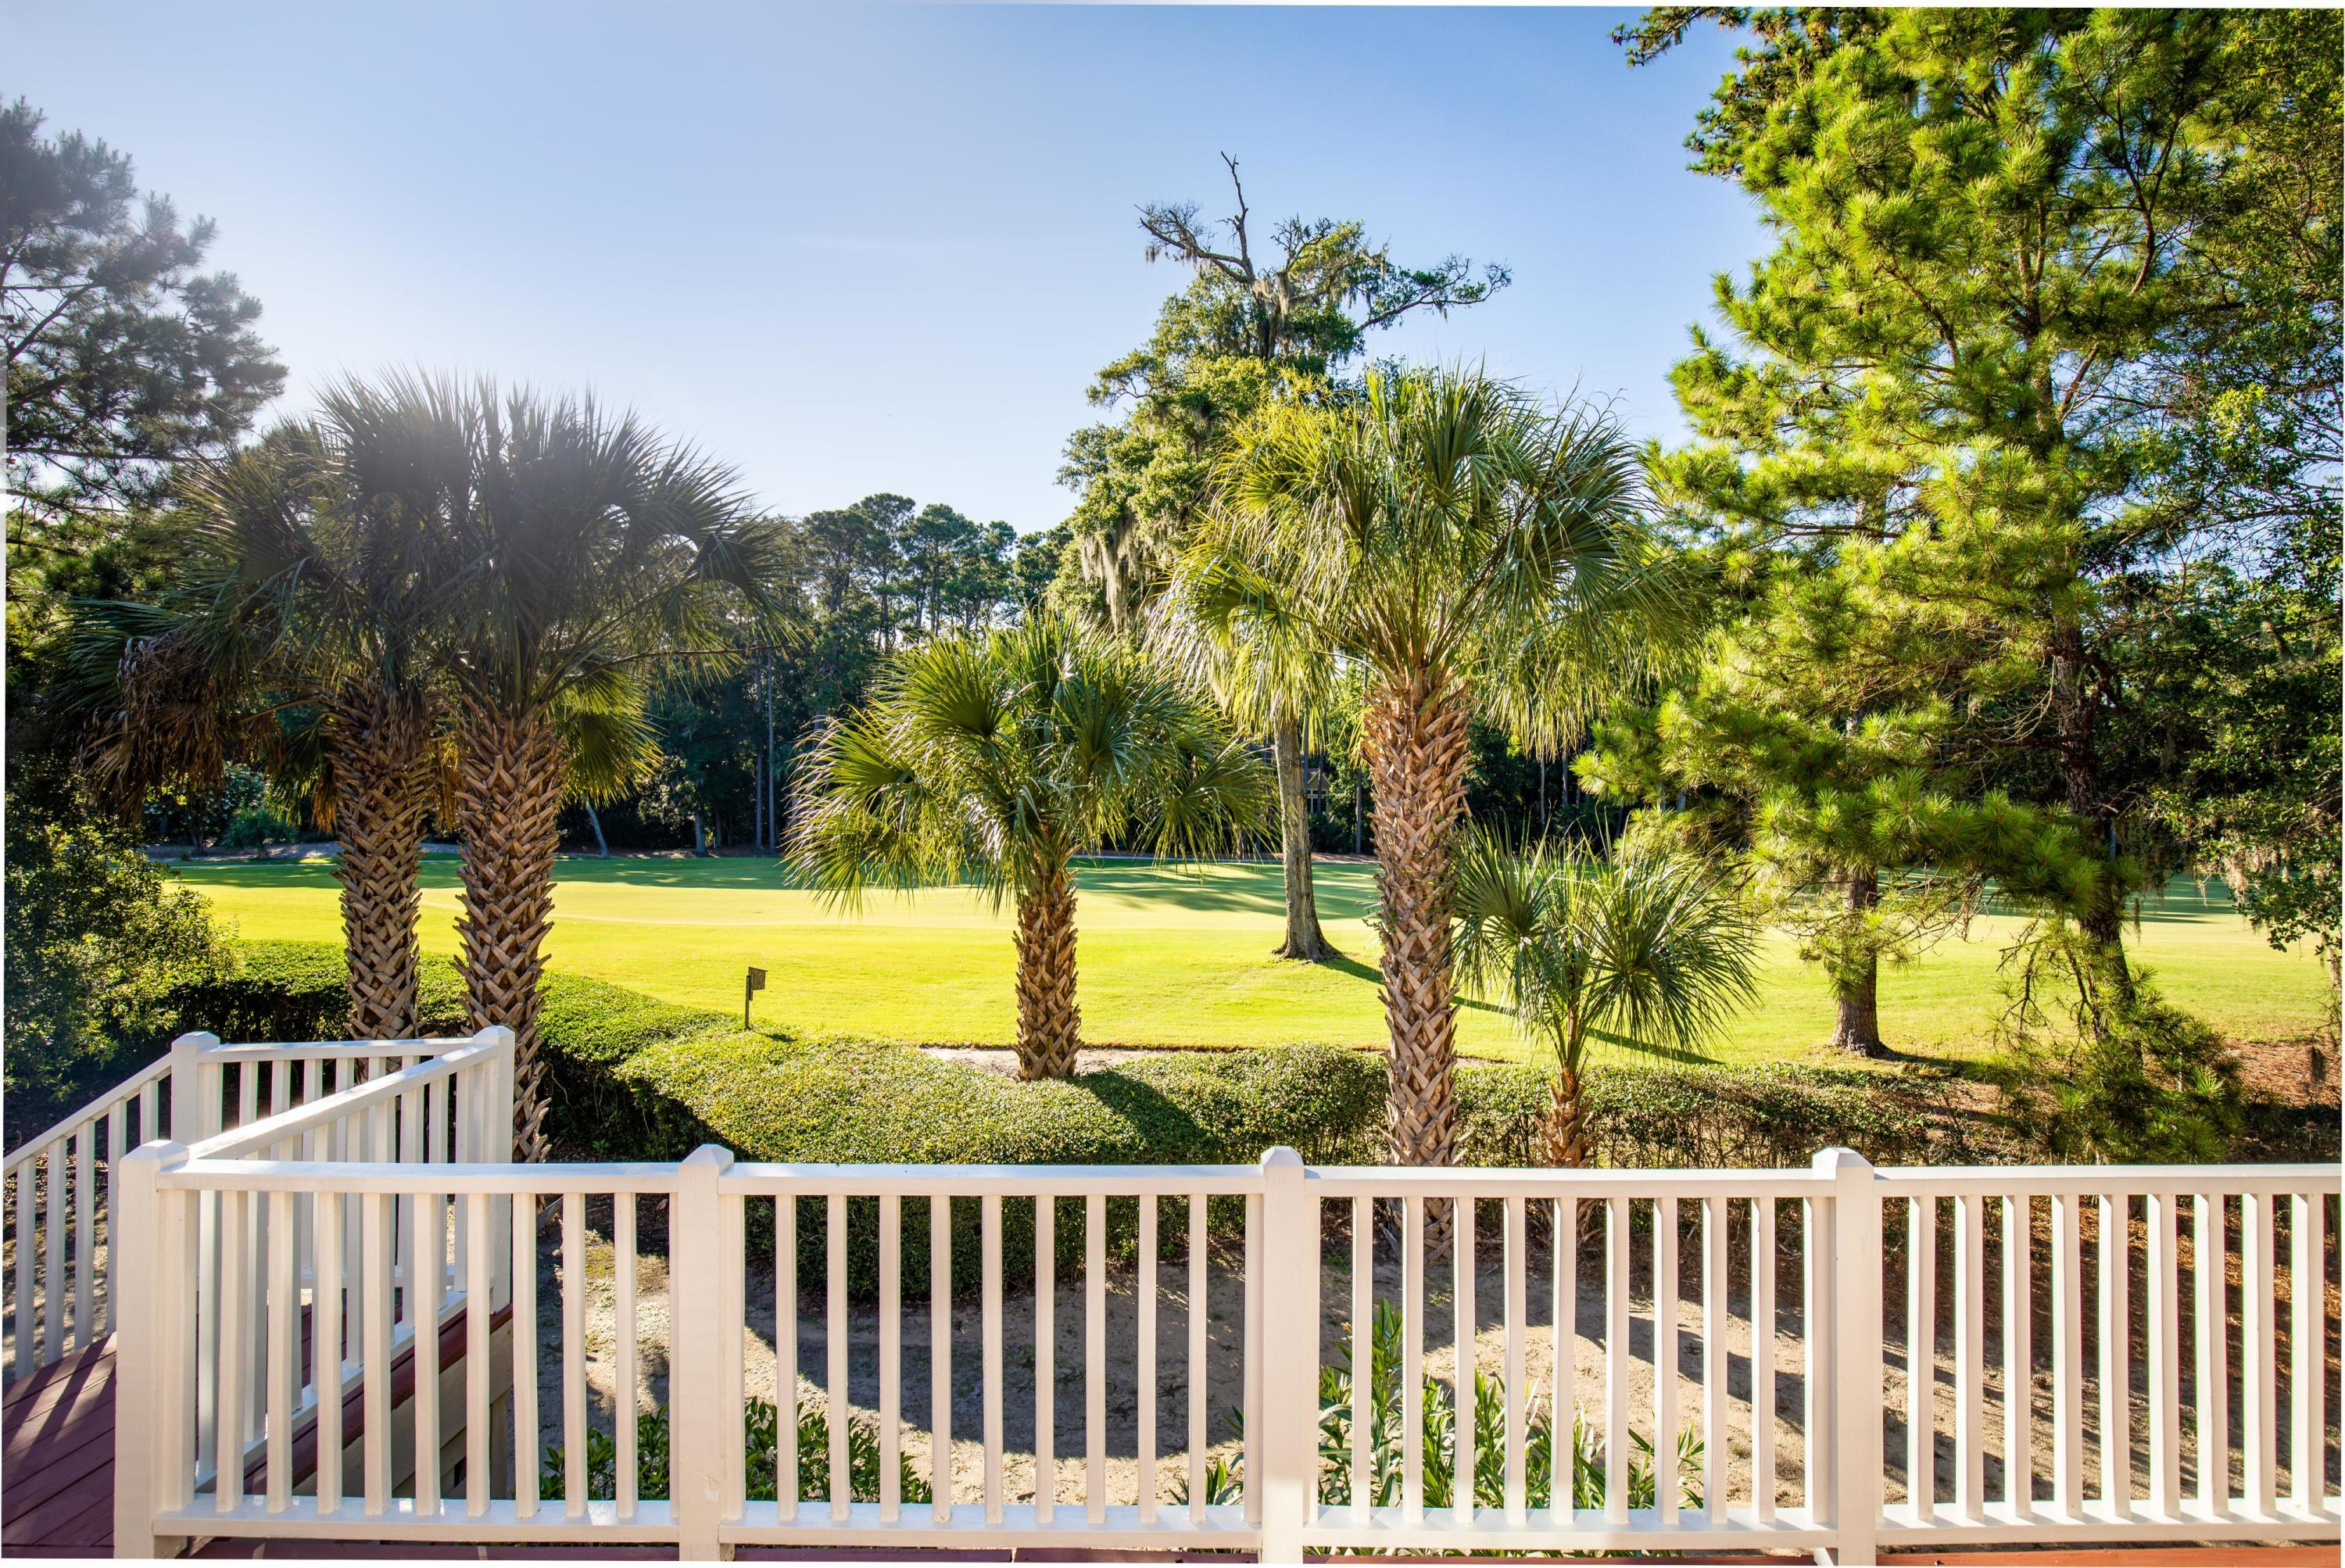 Seabrook Island Homes For Sale - 2470 Cat Tail Pond, Seabrook Island, SC - 1